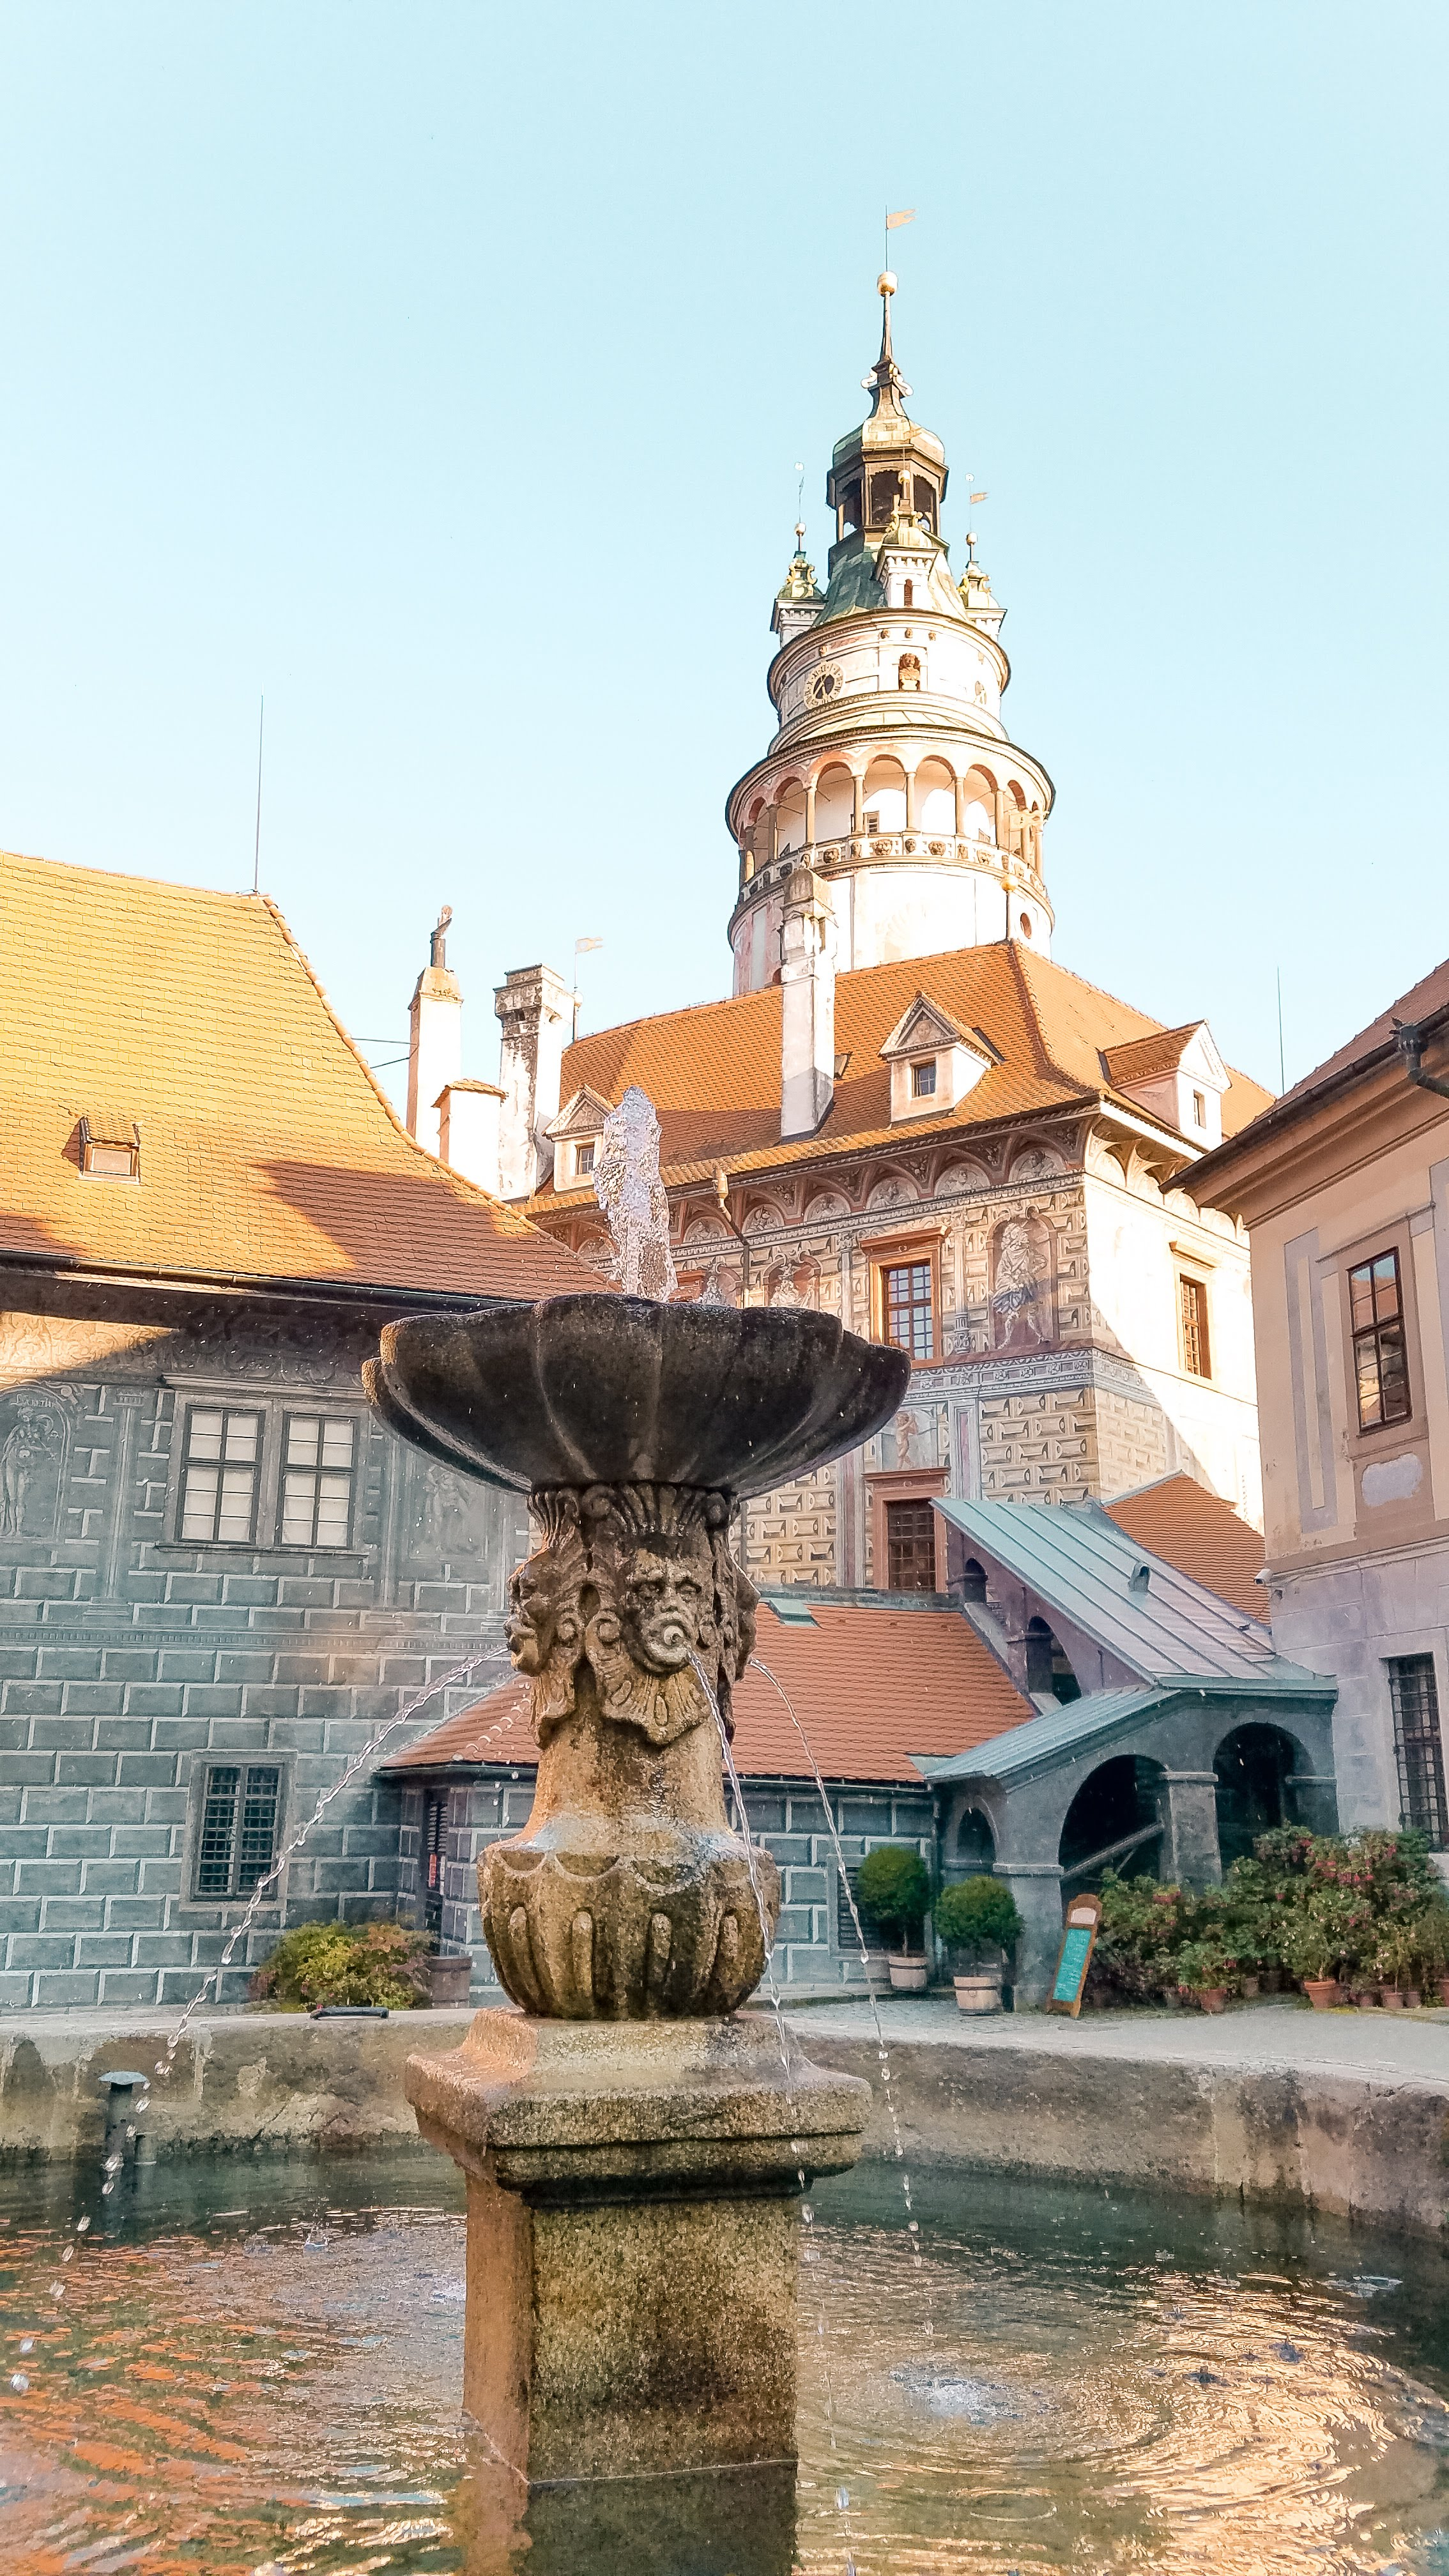 The Castle Tower in Cesky Krumlov is a piece of art with its colorful murals and detailed designs. You can climb to the top for a view of the town.